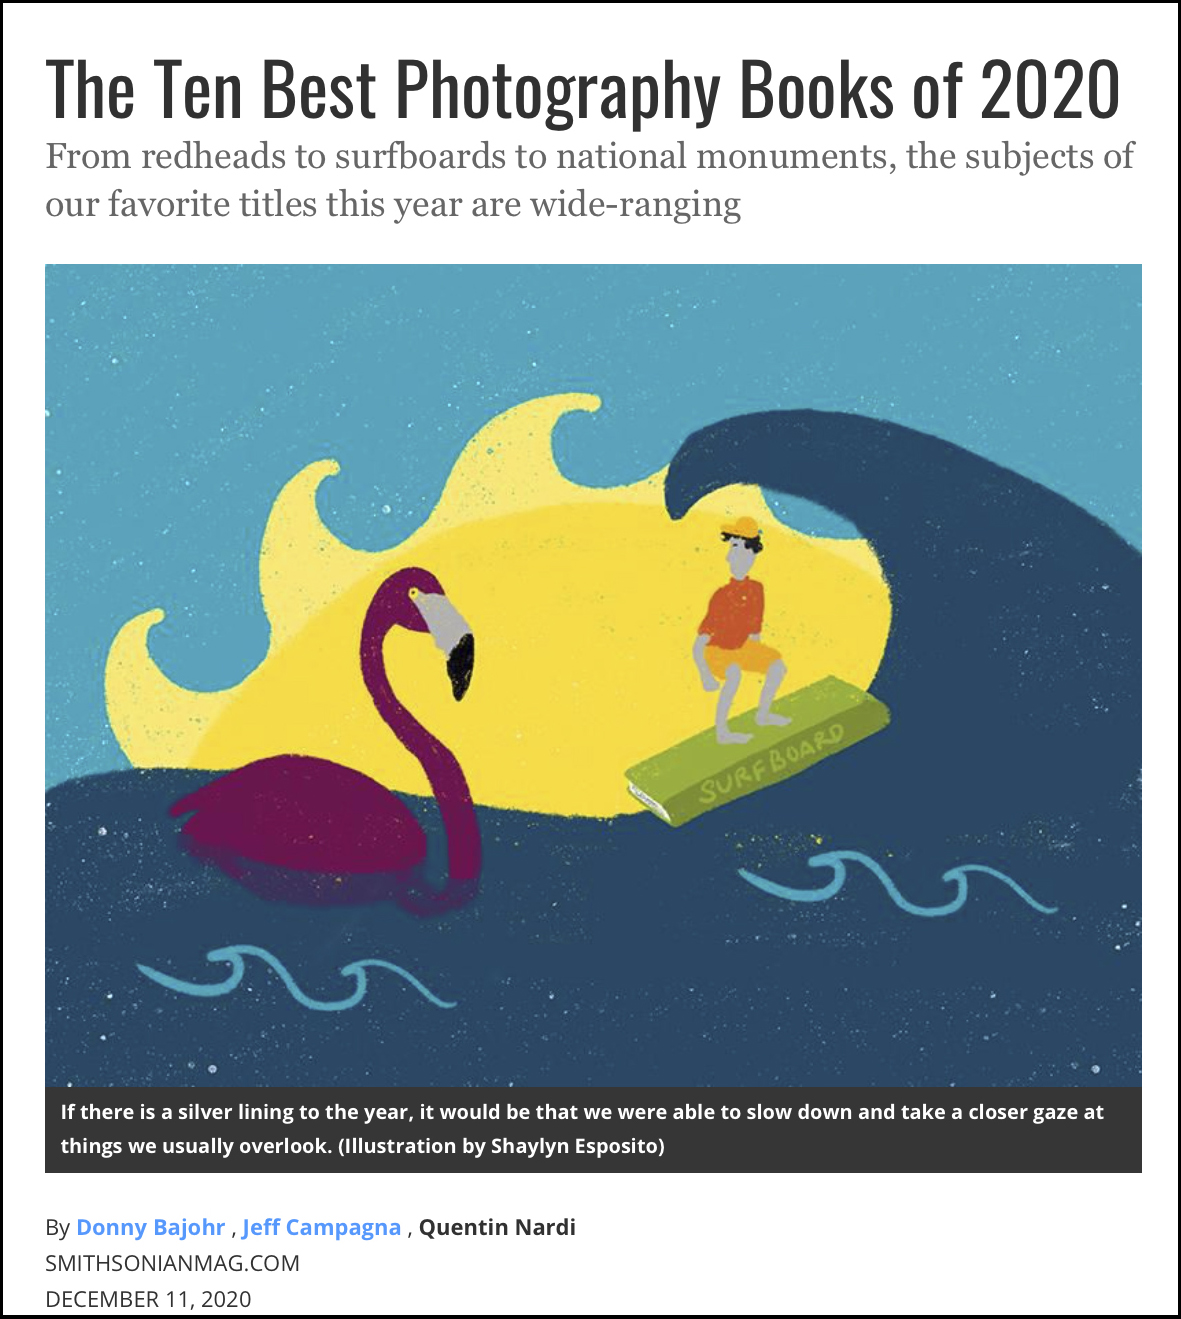 Kieran Dodds Smithsonian Photography Books of the Year, December 2020